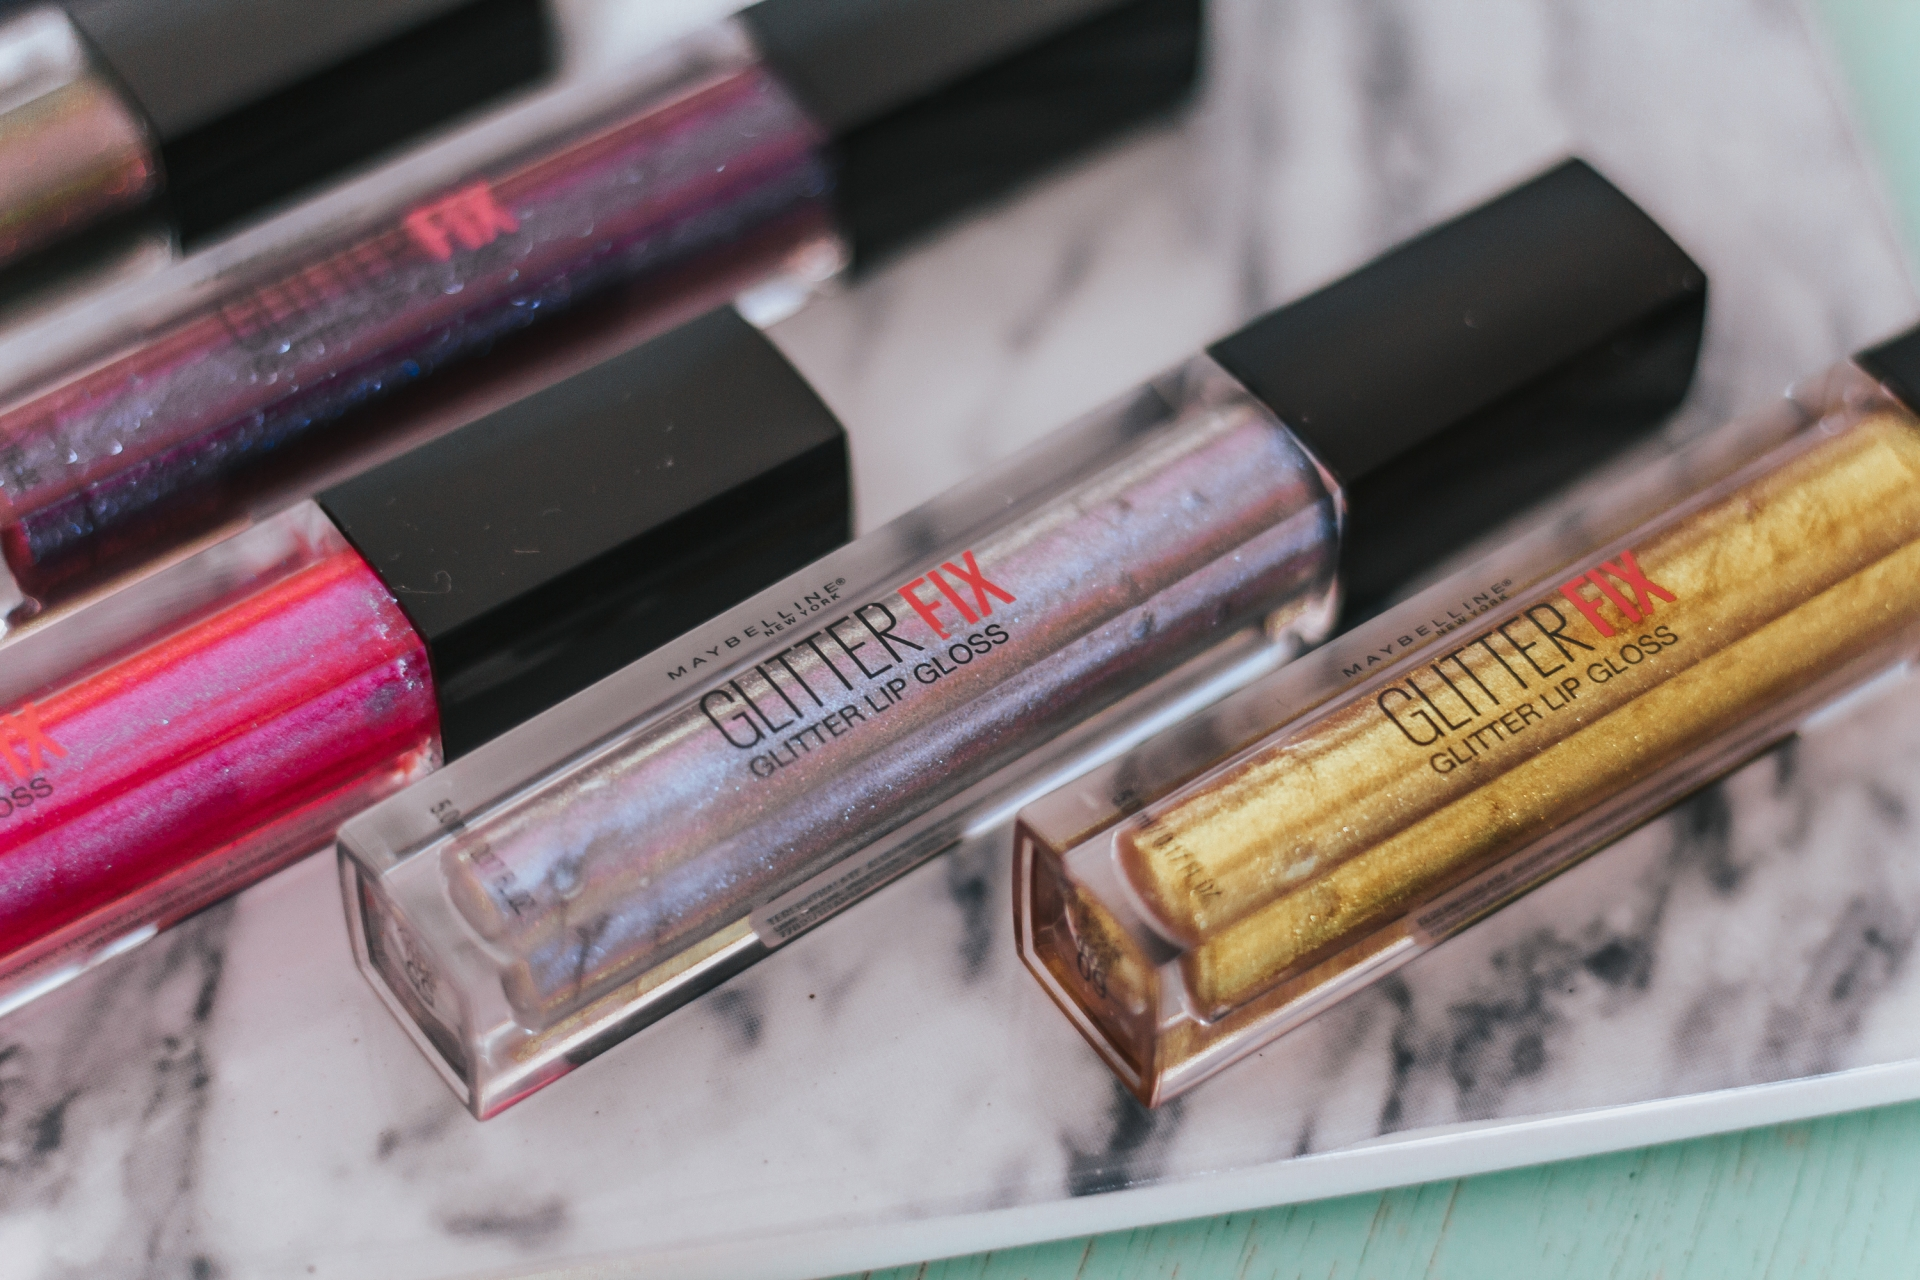 Maybelline Lip Studio Glitter Fix Lip Gloss